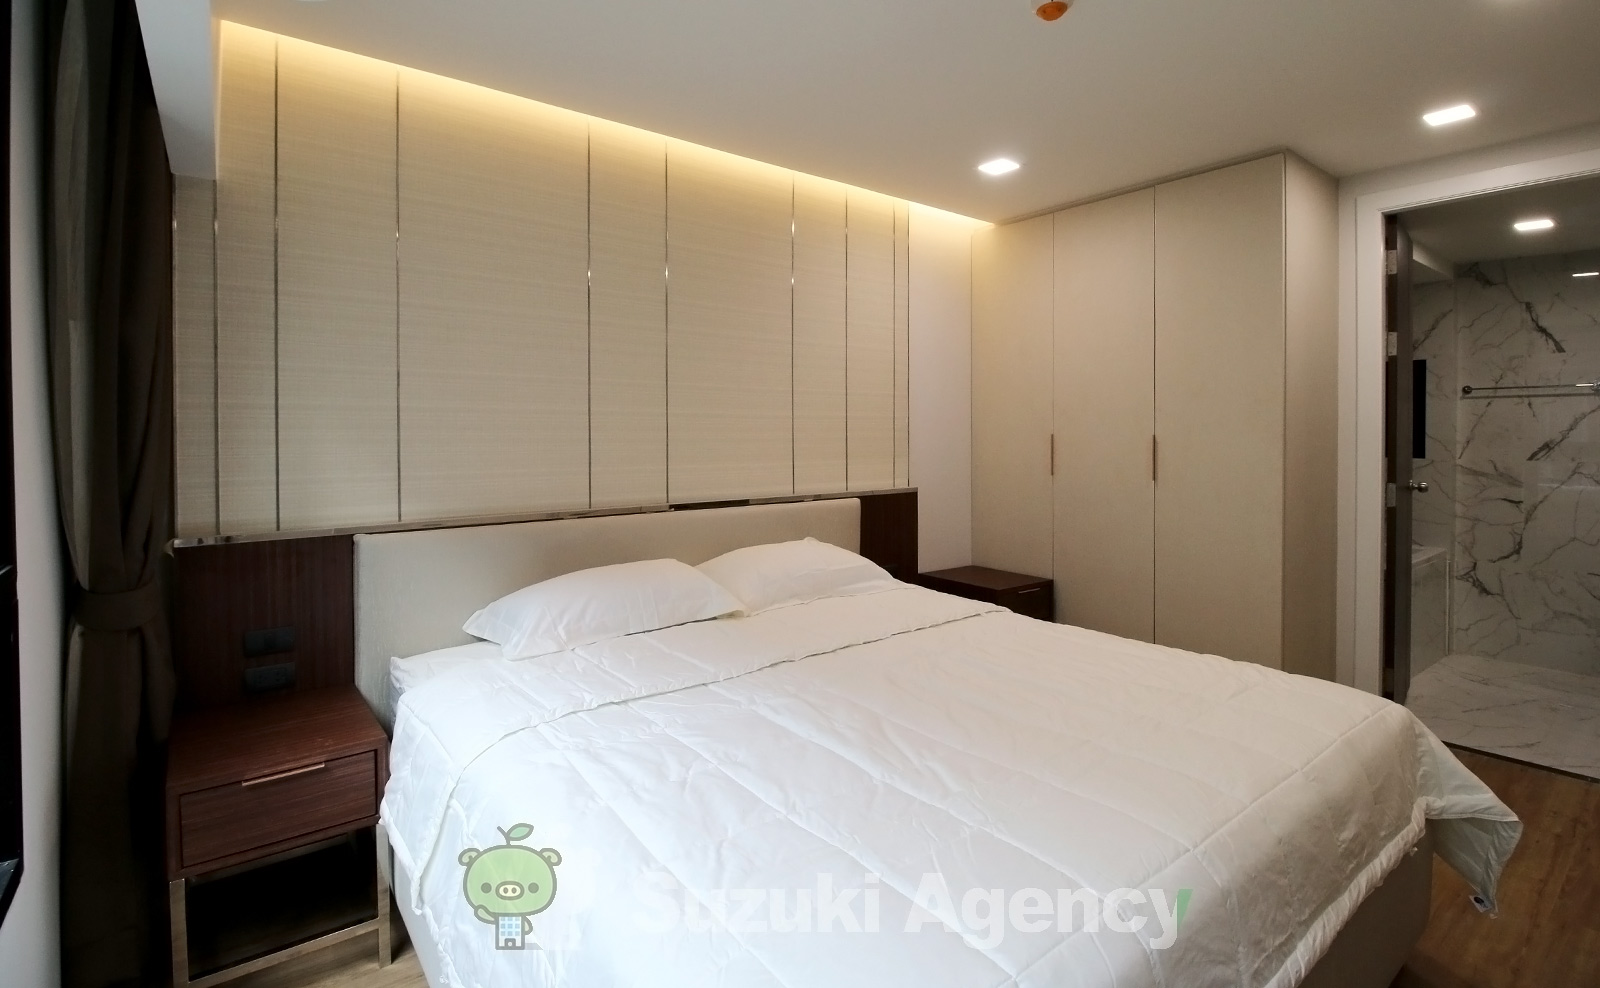 Kasturi Residence:1Bed Room Photos No.8